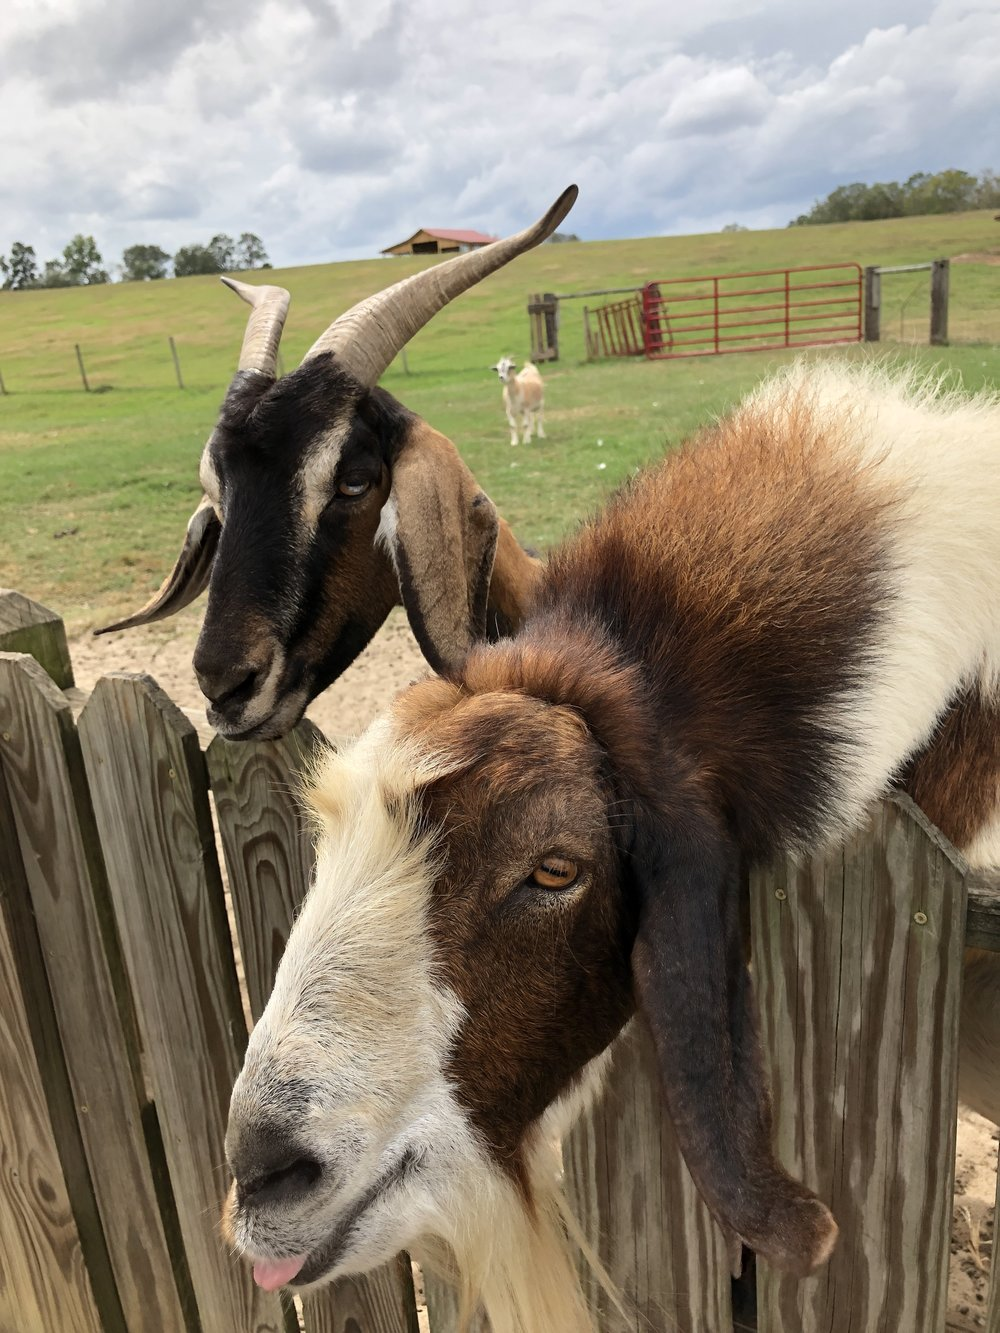 two-goats-at-fence.jpg